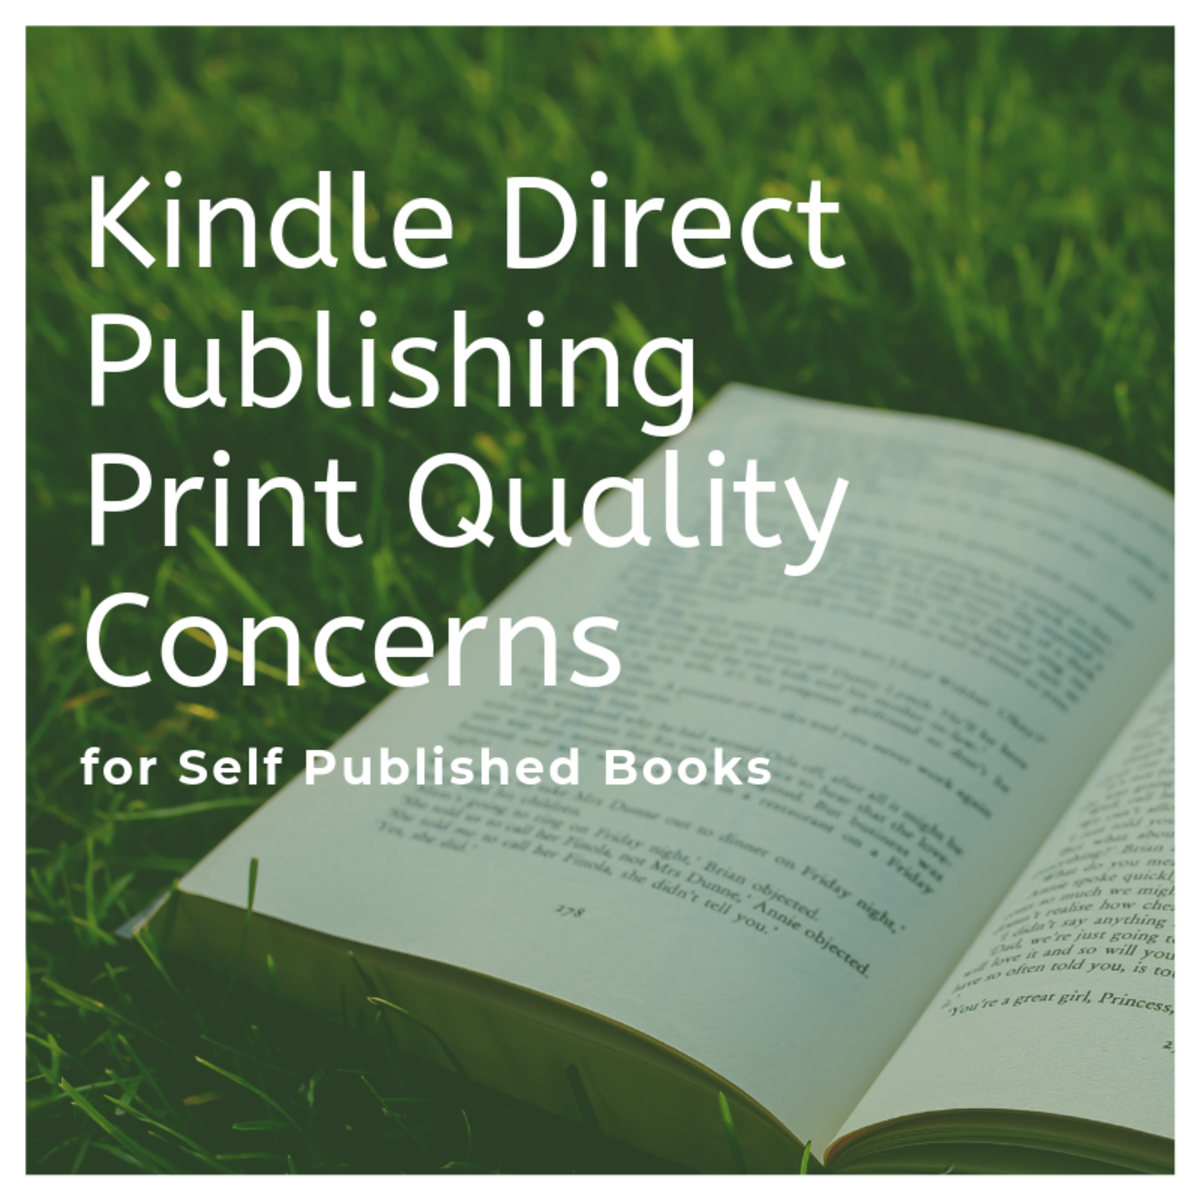 Print Quality Concerns About Self-Published Books From Kindle Direct Publishing